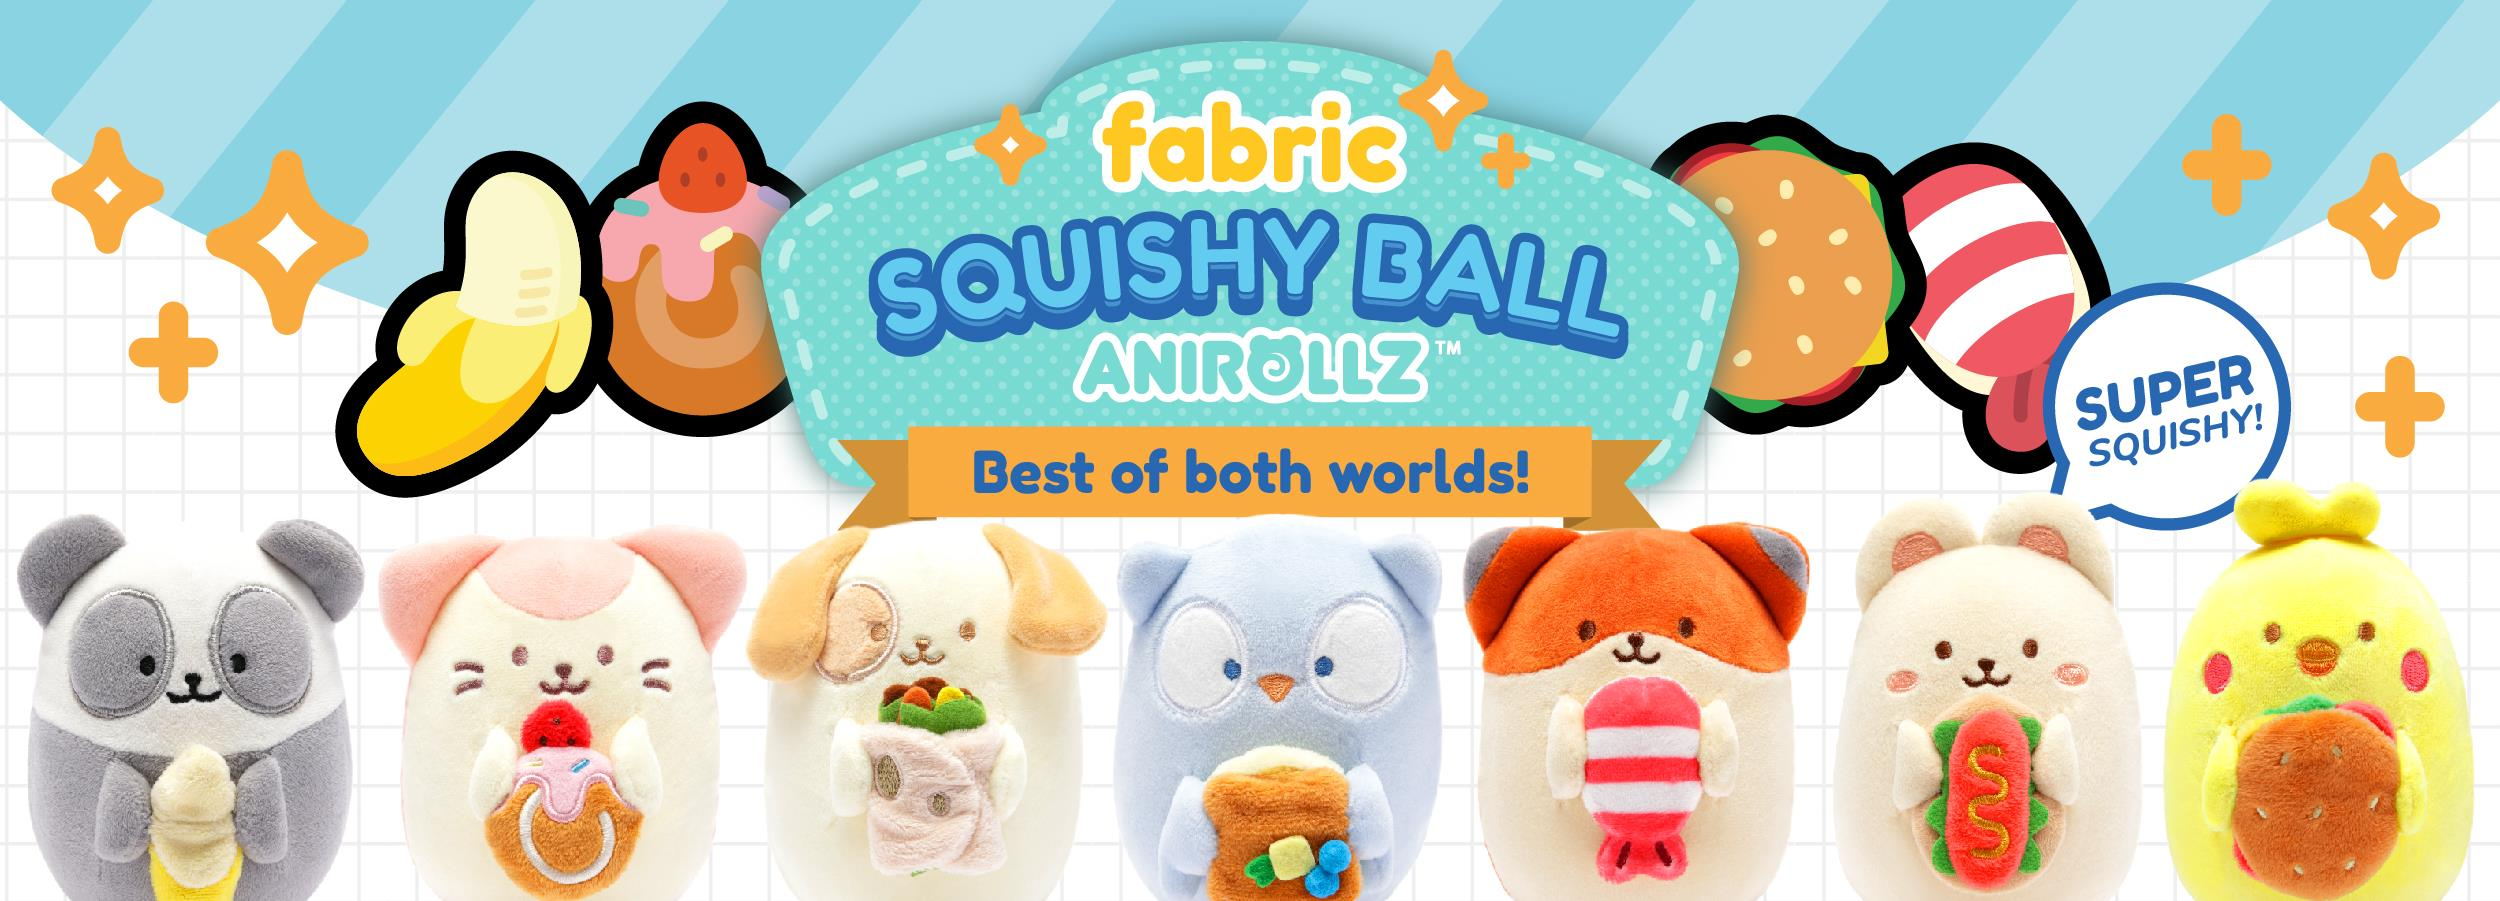 Anirollz Squishy